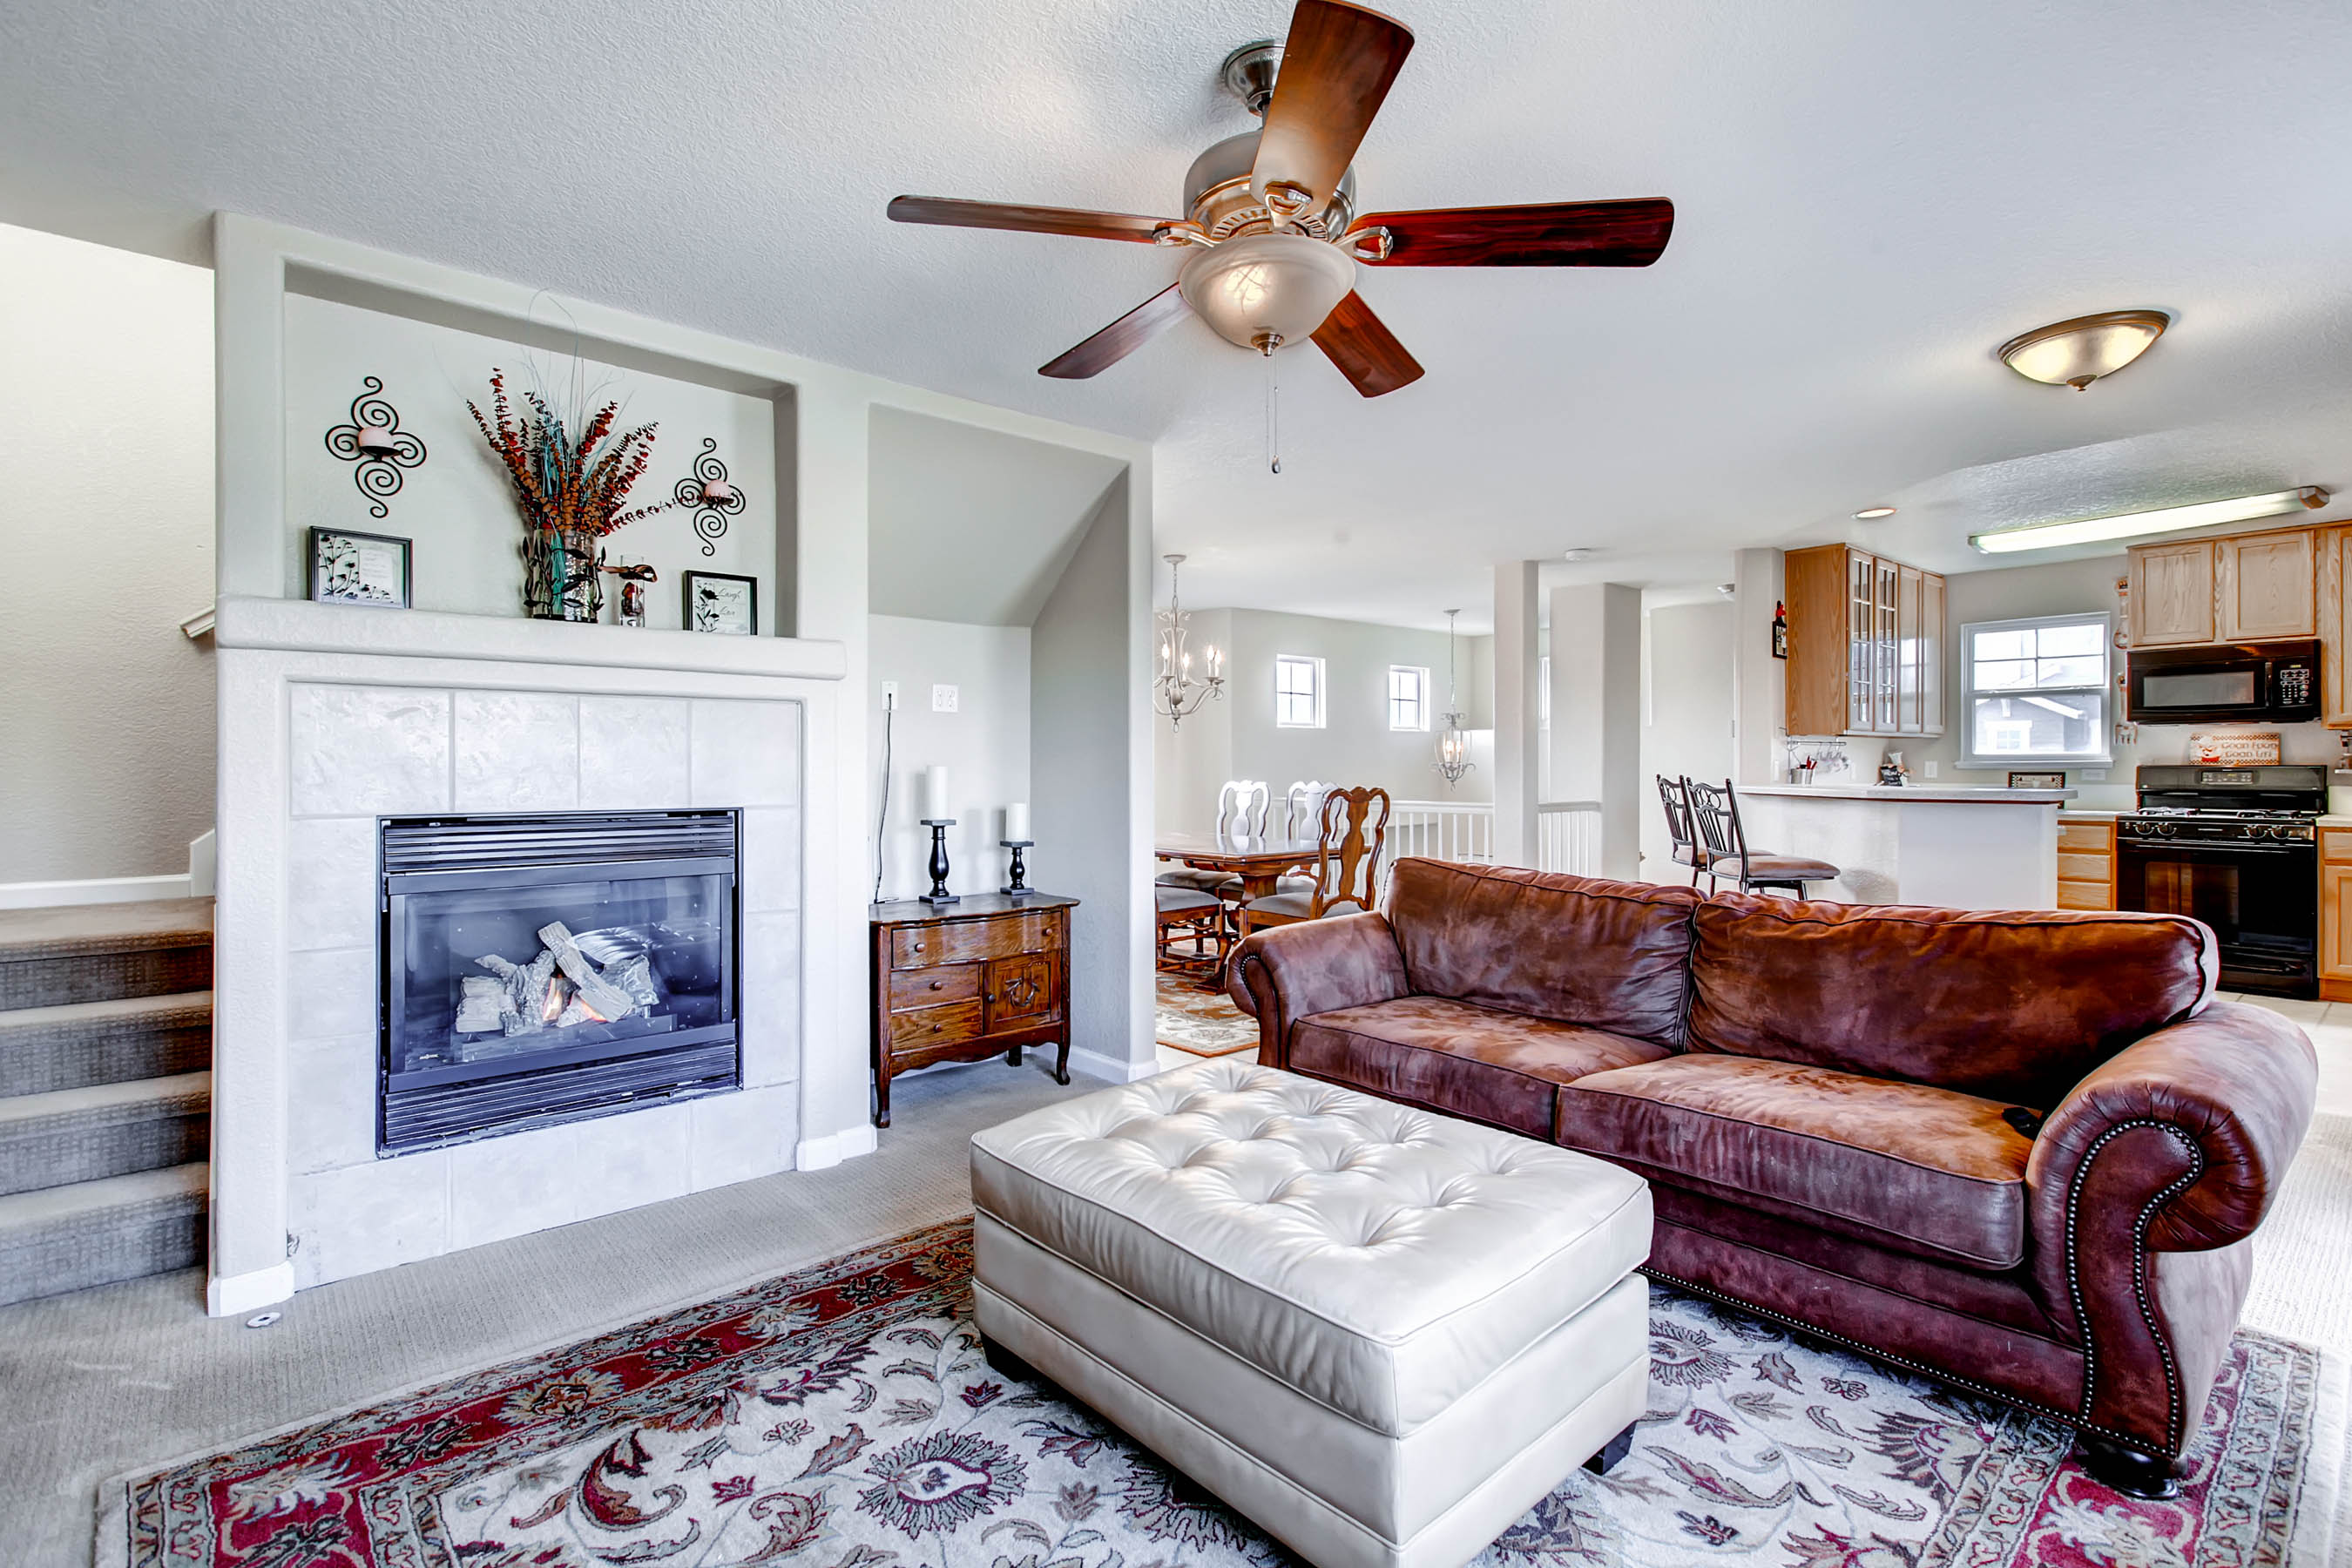 Fantastic end unit townhouse in Ridgeview Eagle Bend